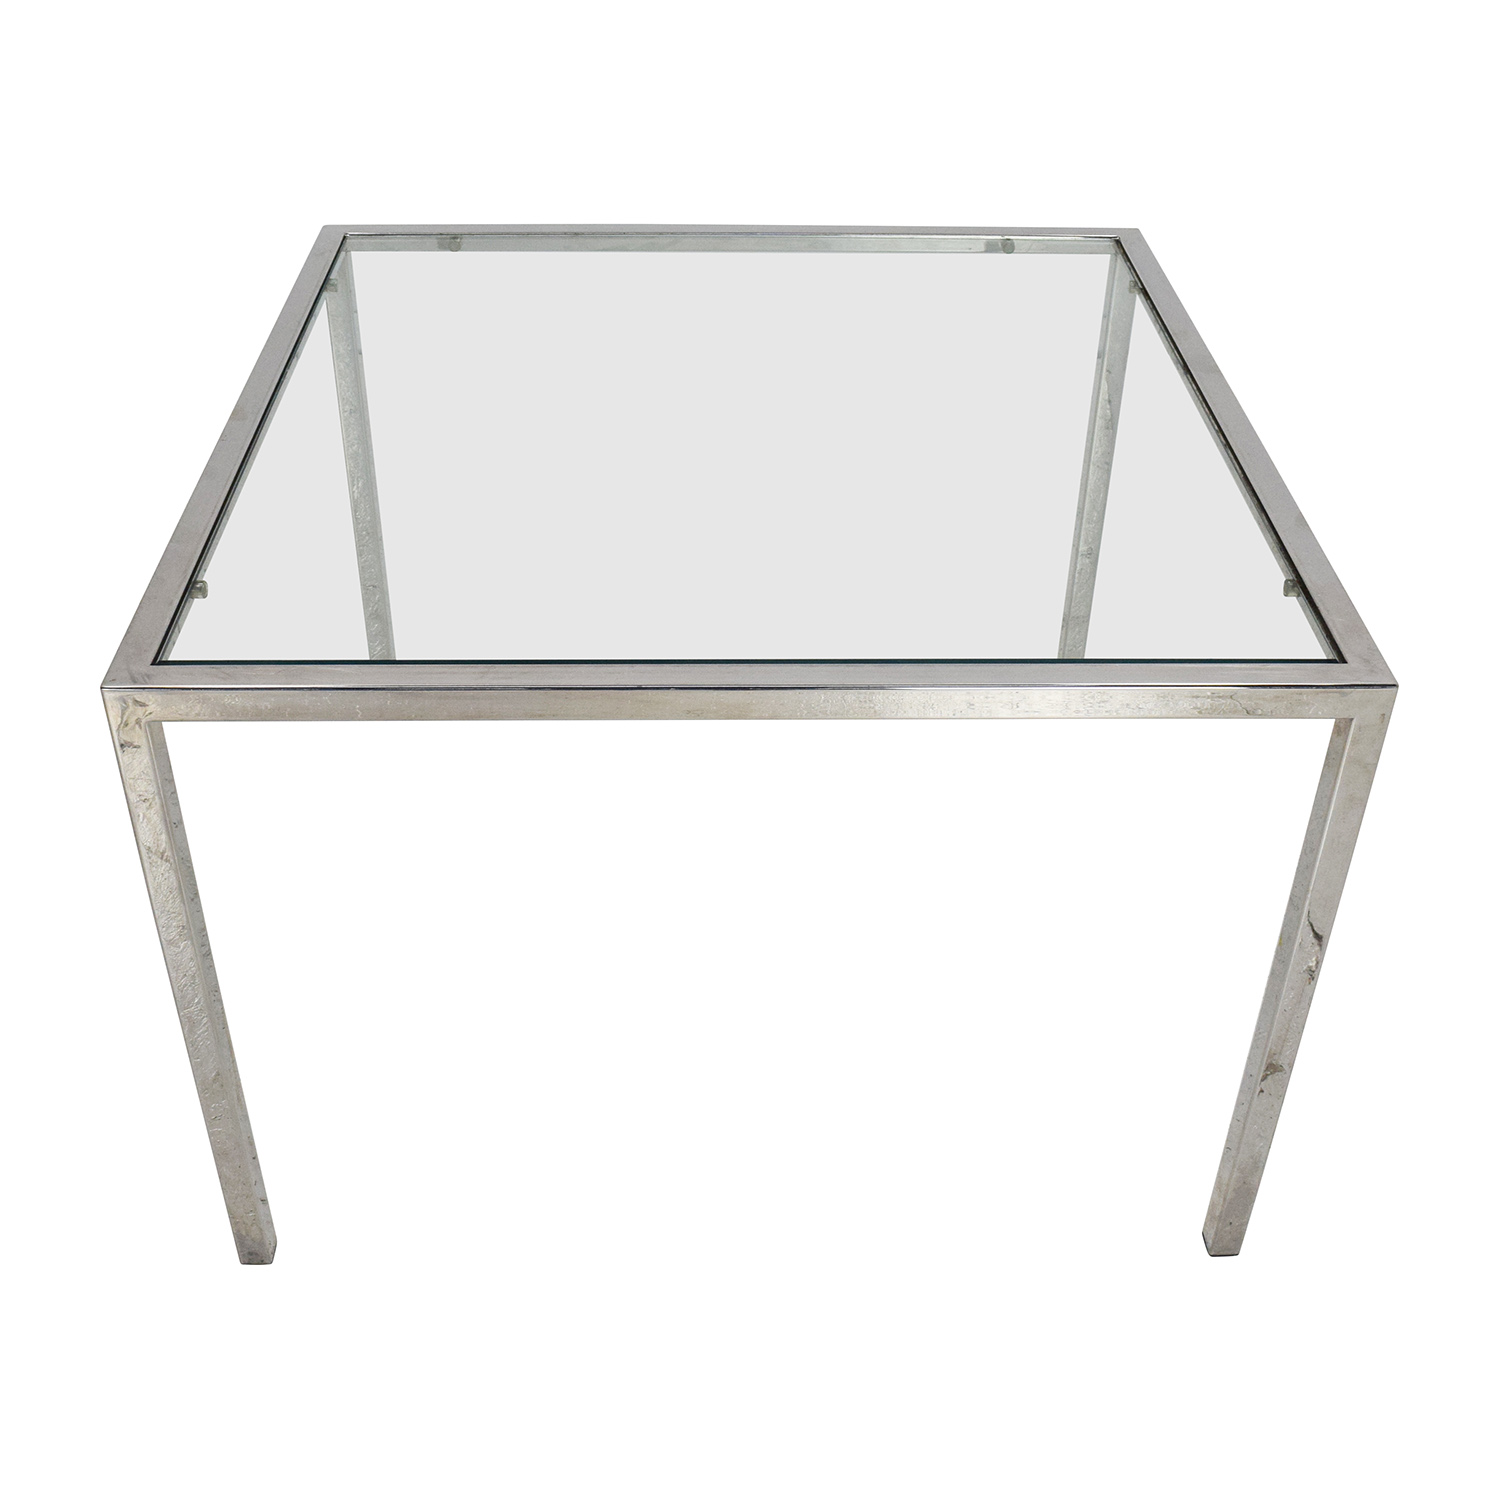 Unknown Brand Glass End Table for sale